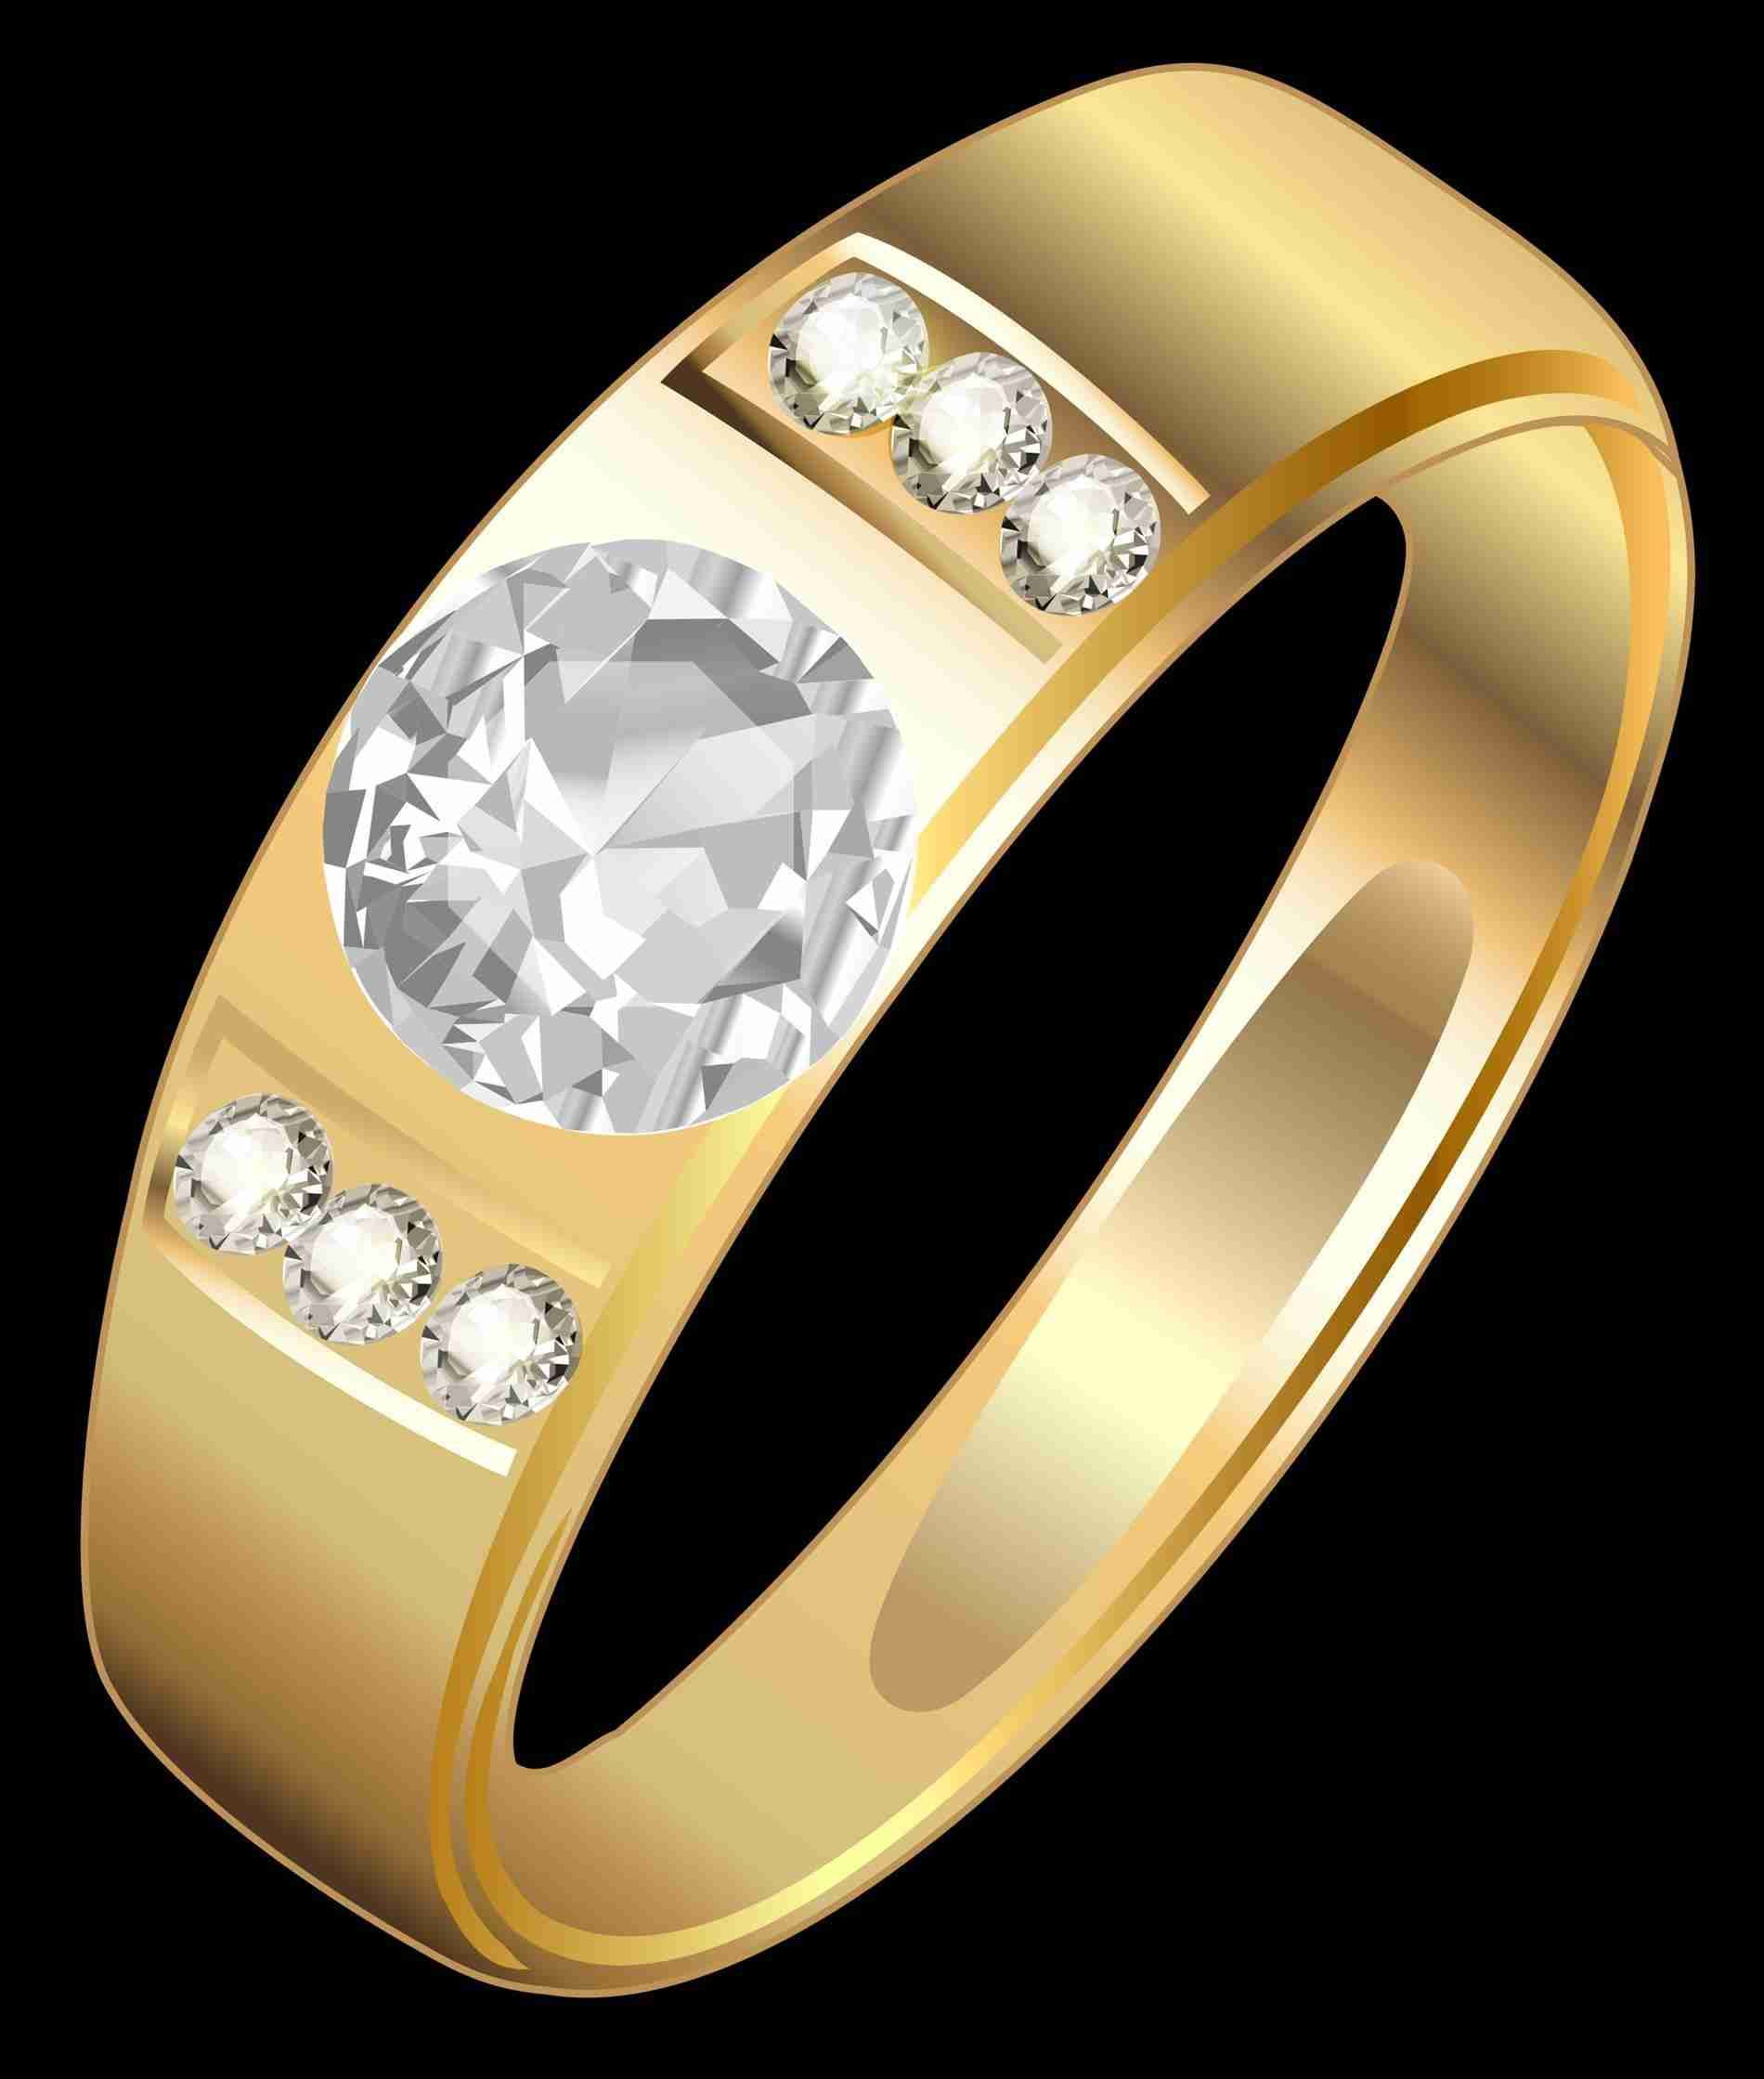 wedding rings png without background.